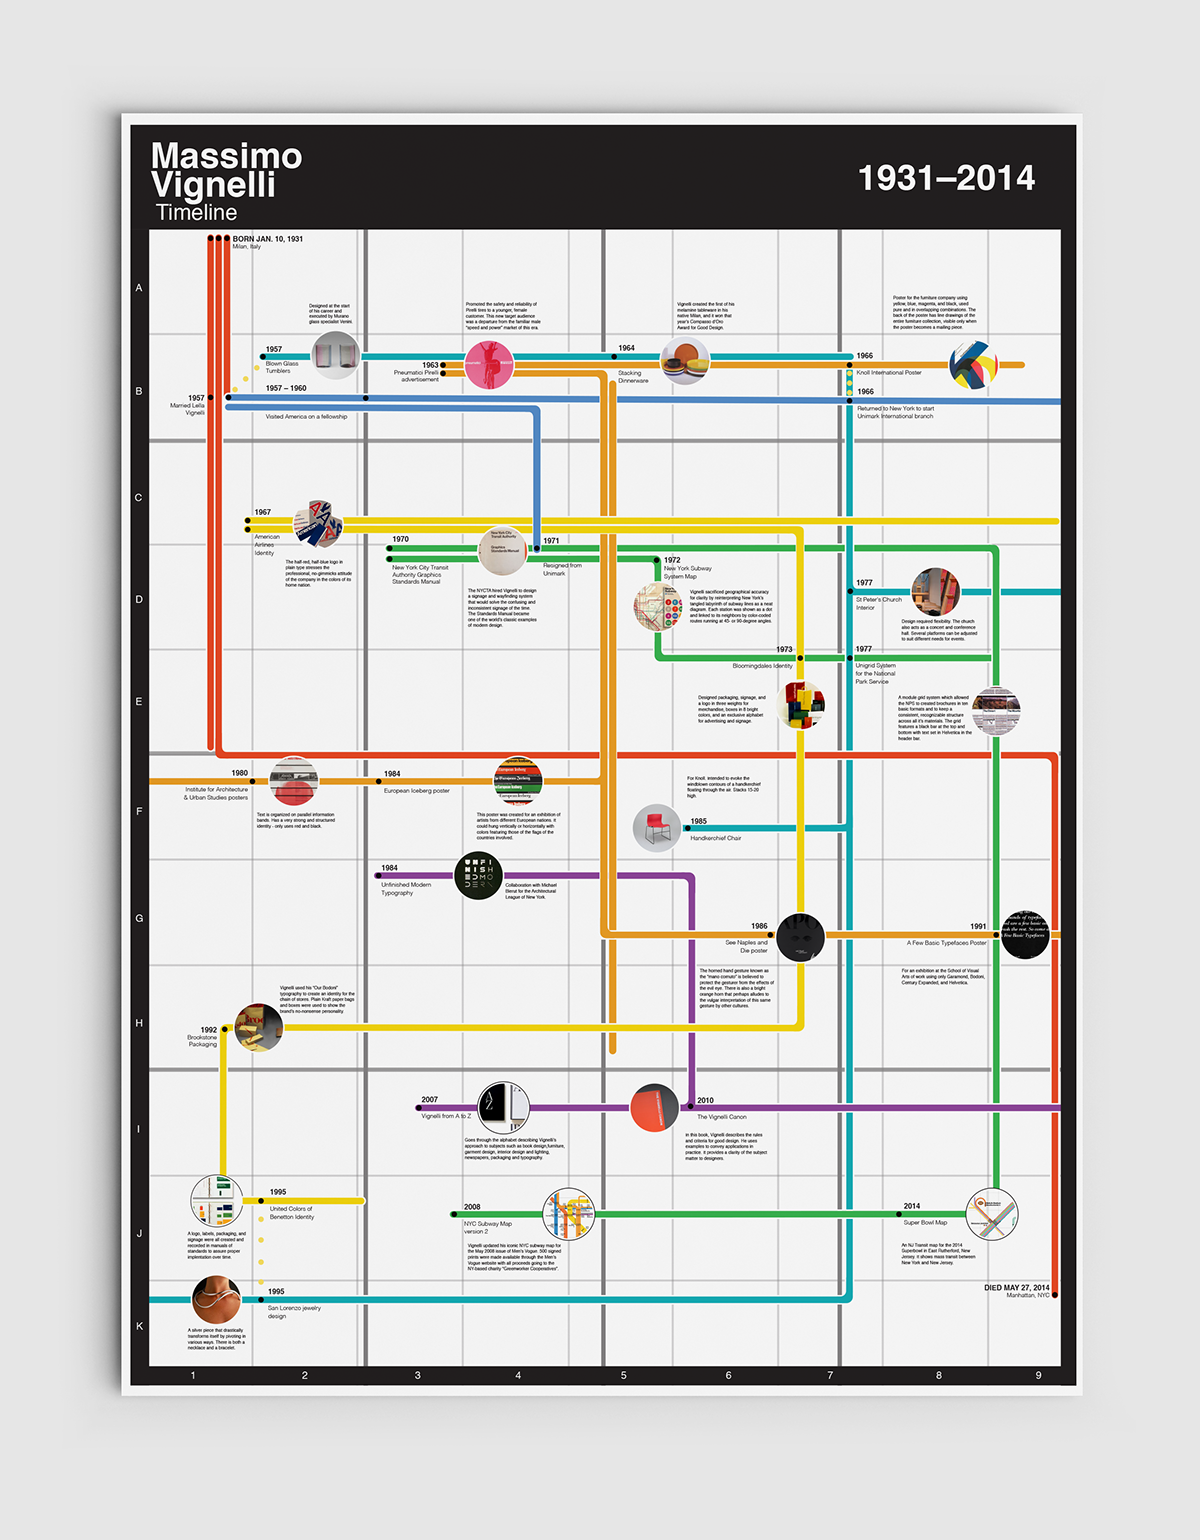 Nyc Subway Map Massimo Vignelli.Massimo Vignelli Timeline On Sva Portfolios